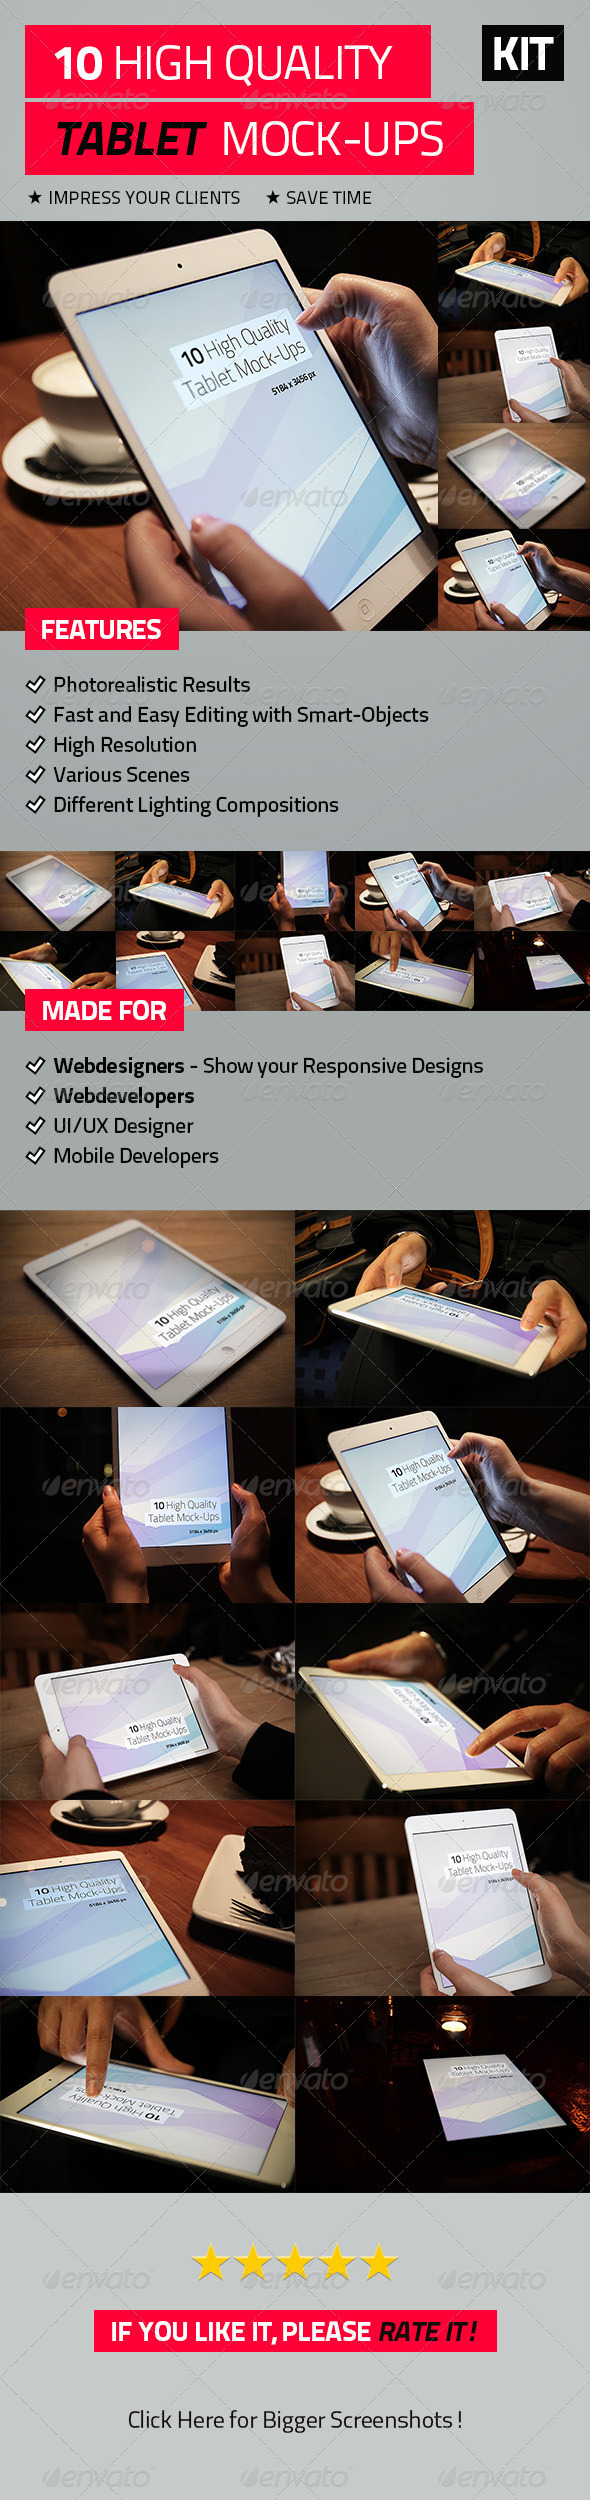 10_high_quality_tablet_mock_ups_4476731_cap